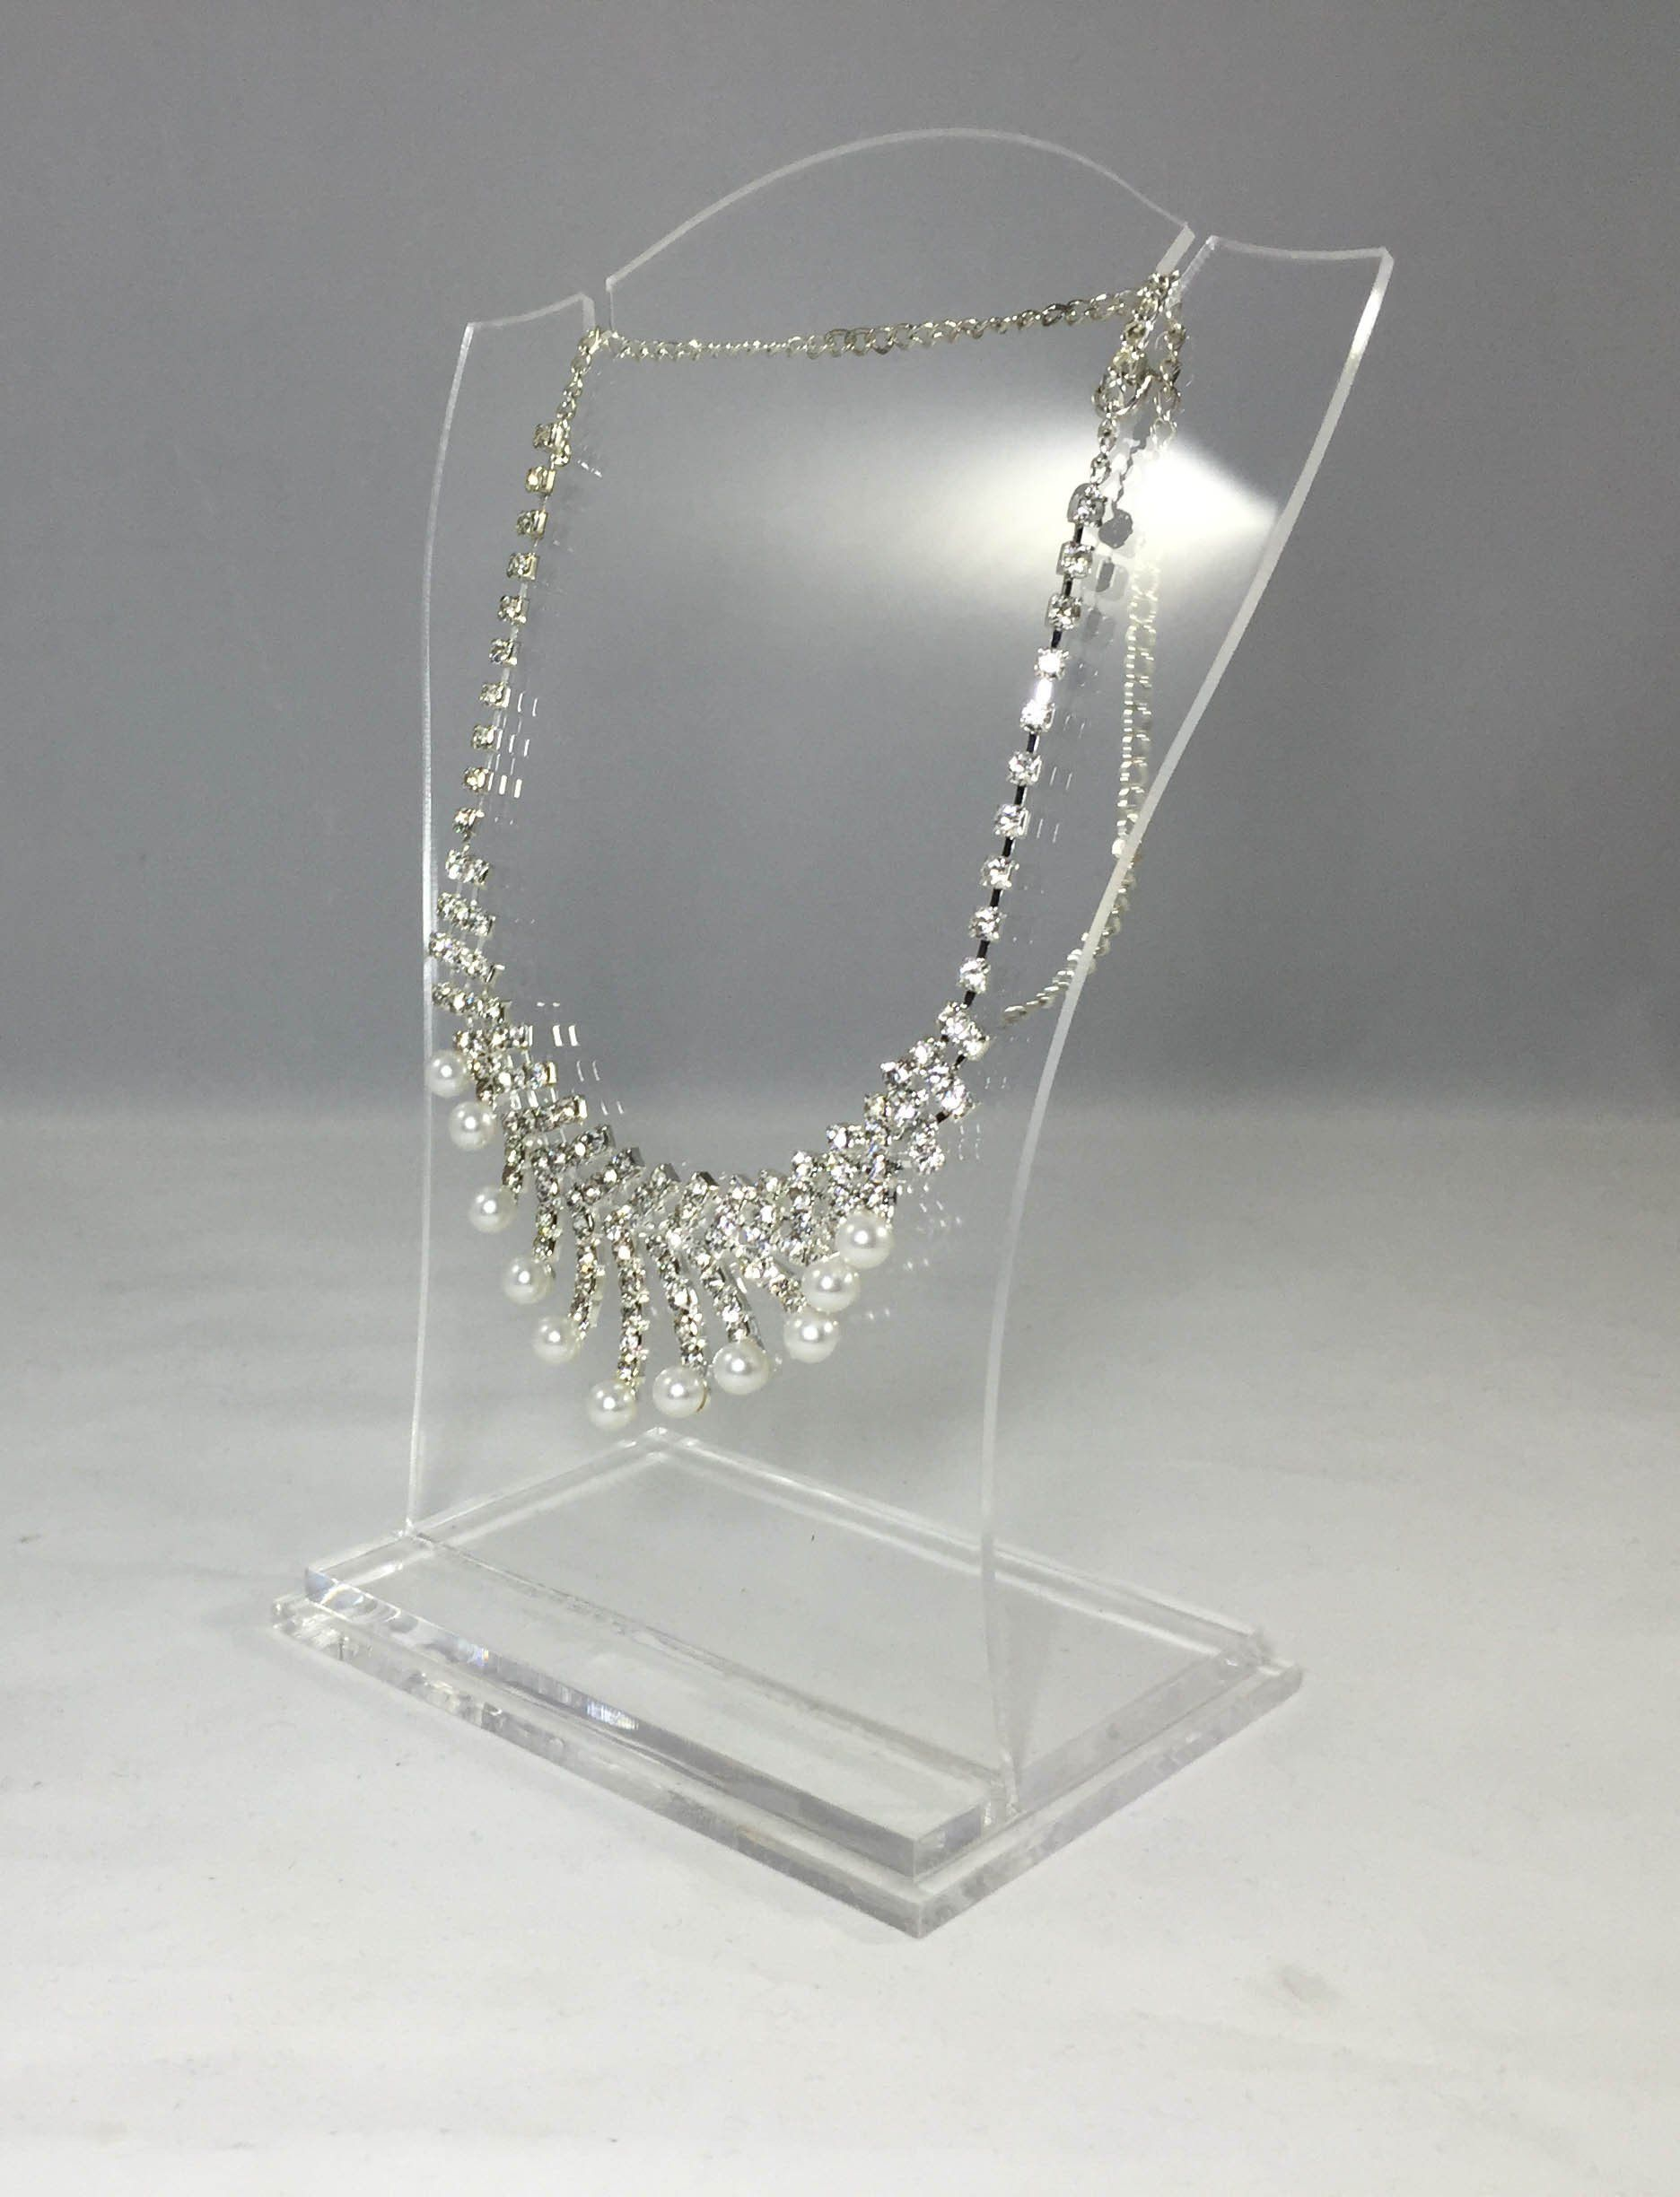 Clear Acrylic Plexigl Necklace